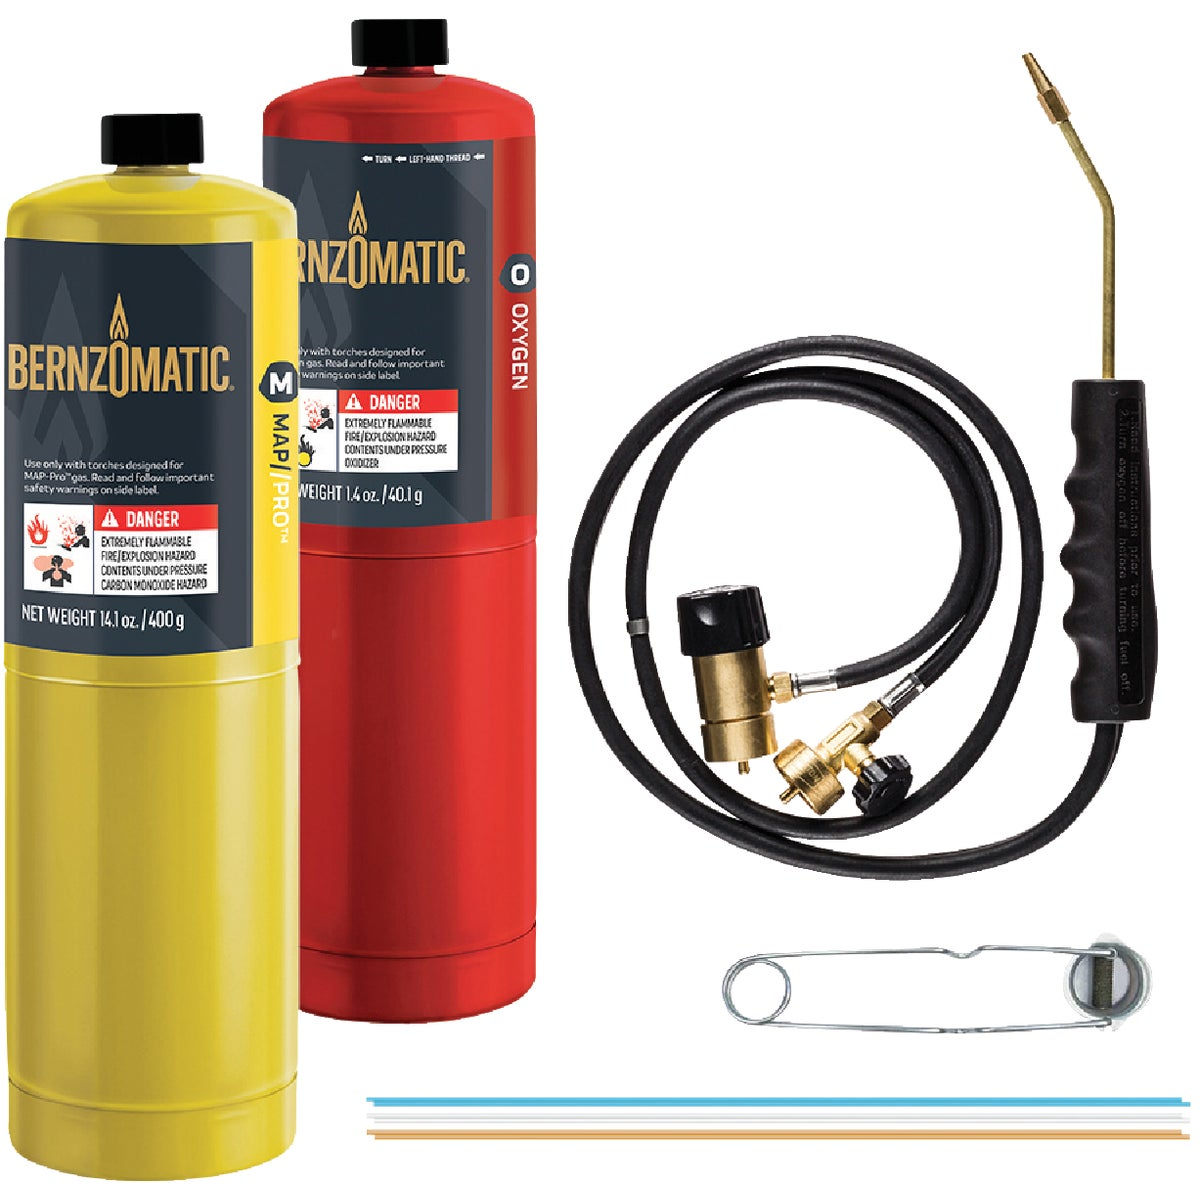 OX2550KCSM OXY TORCH KIT - 331673 by Worthington